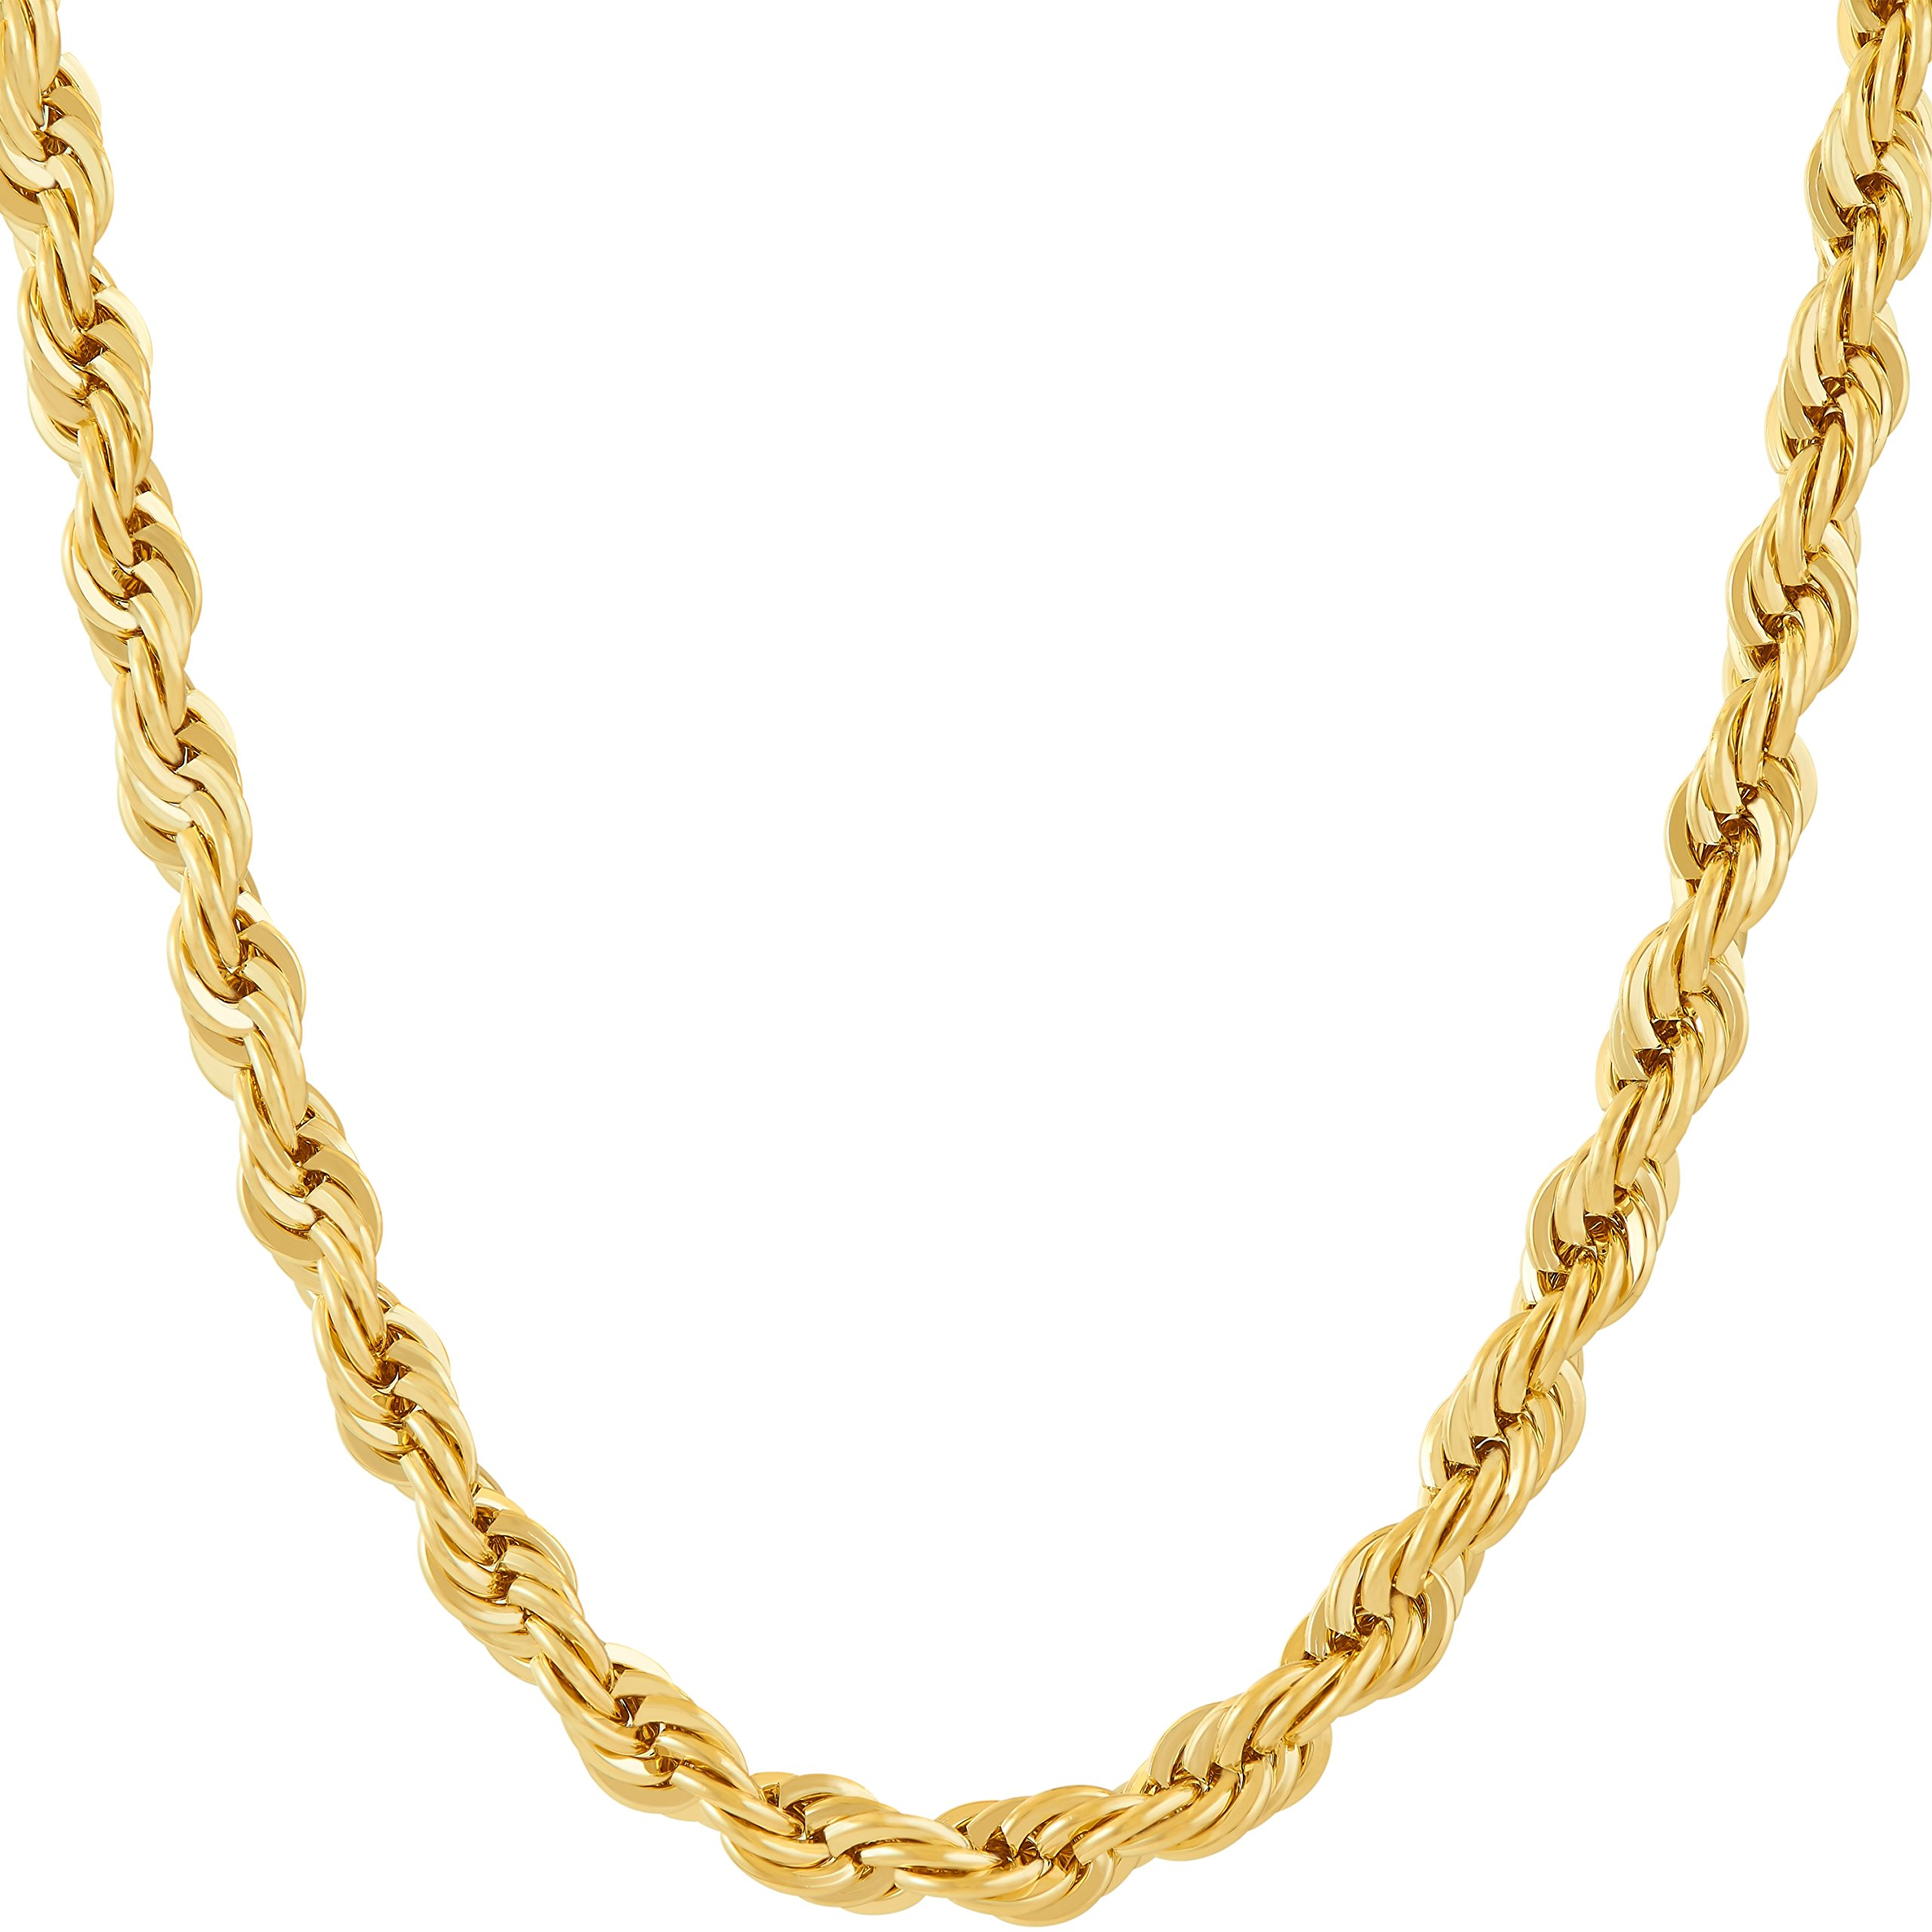 Lifetime Jewelry 6MM Rope Chain, 24K Gold with Inlaid Bronze, Premium Fashion Jewelry, Pendant Necklace Made to Wear Alone or with Pendants, Guaranteed for Life, 24 Inches